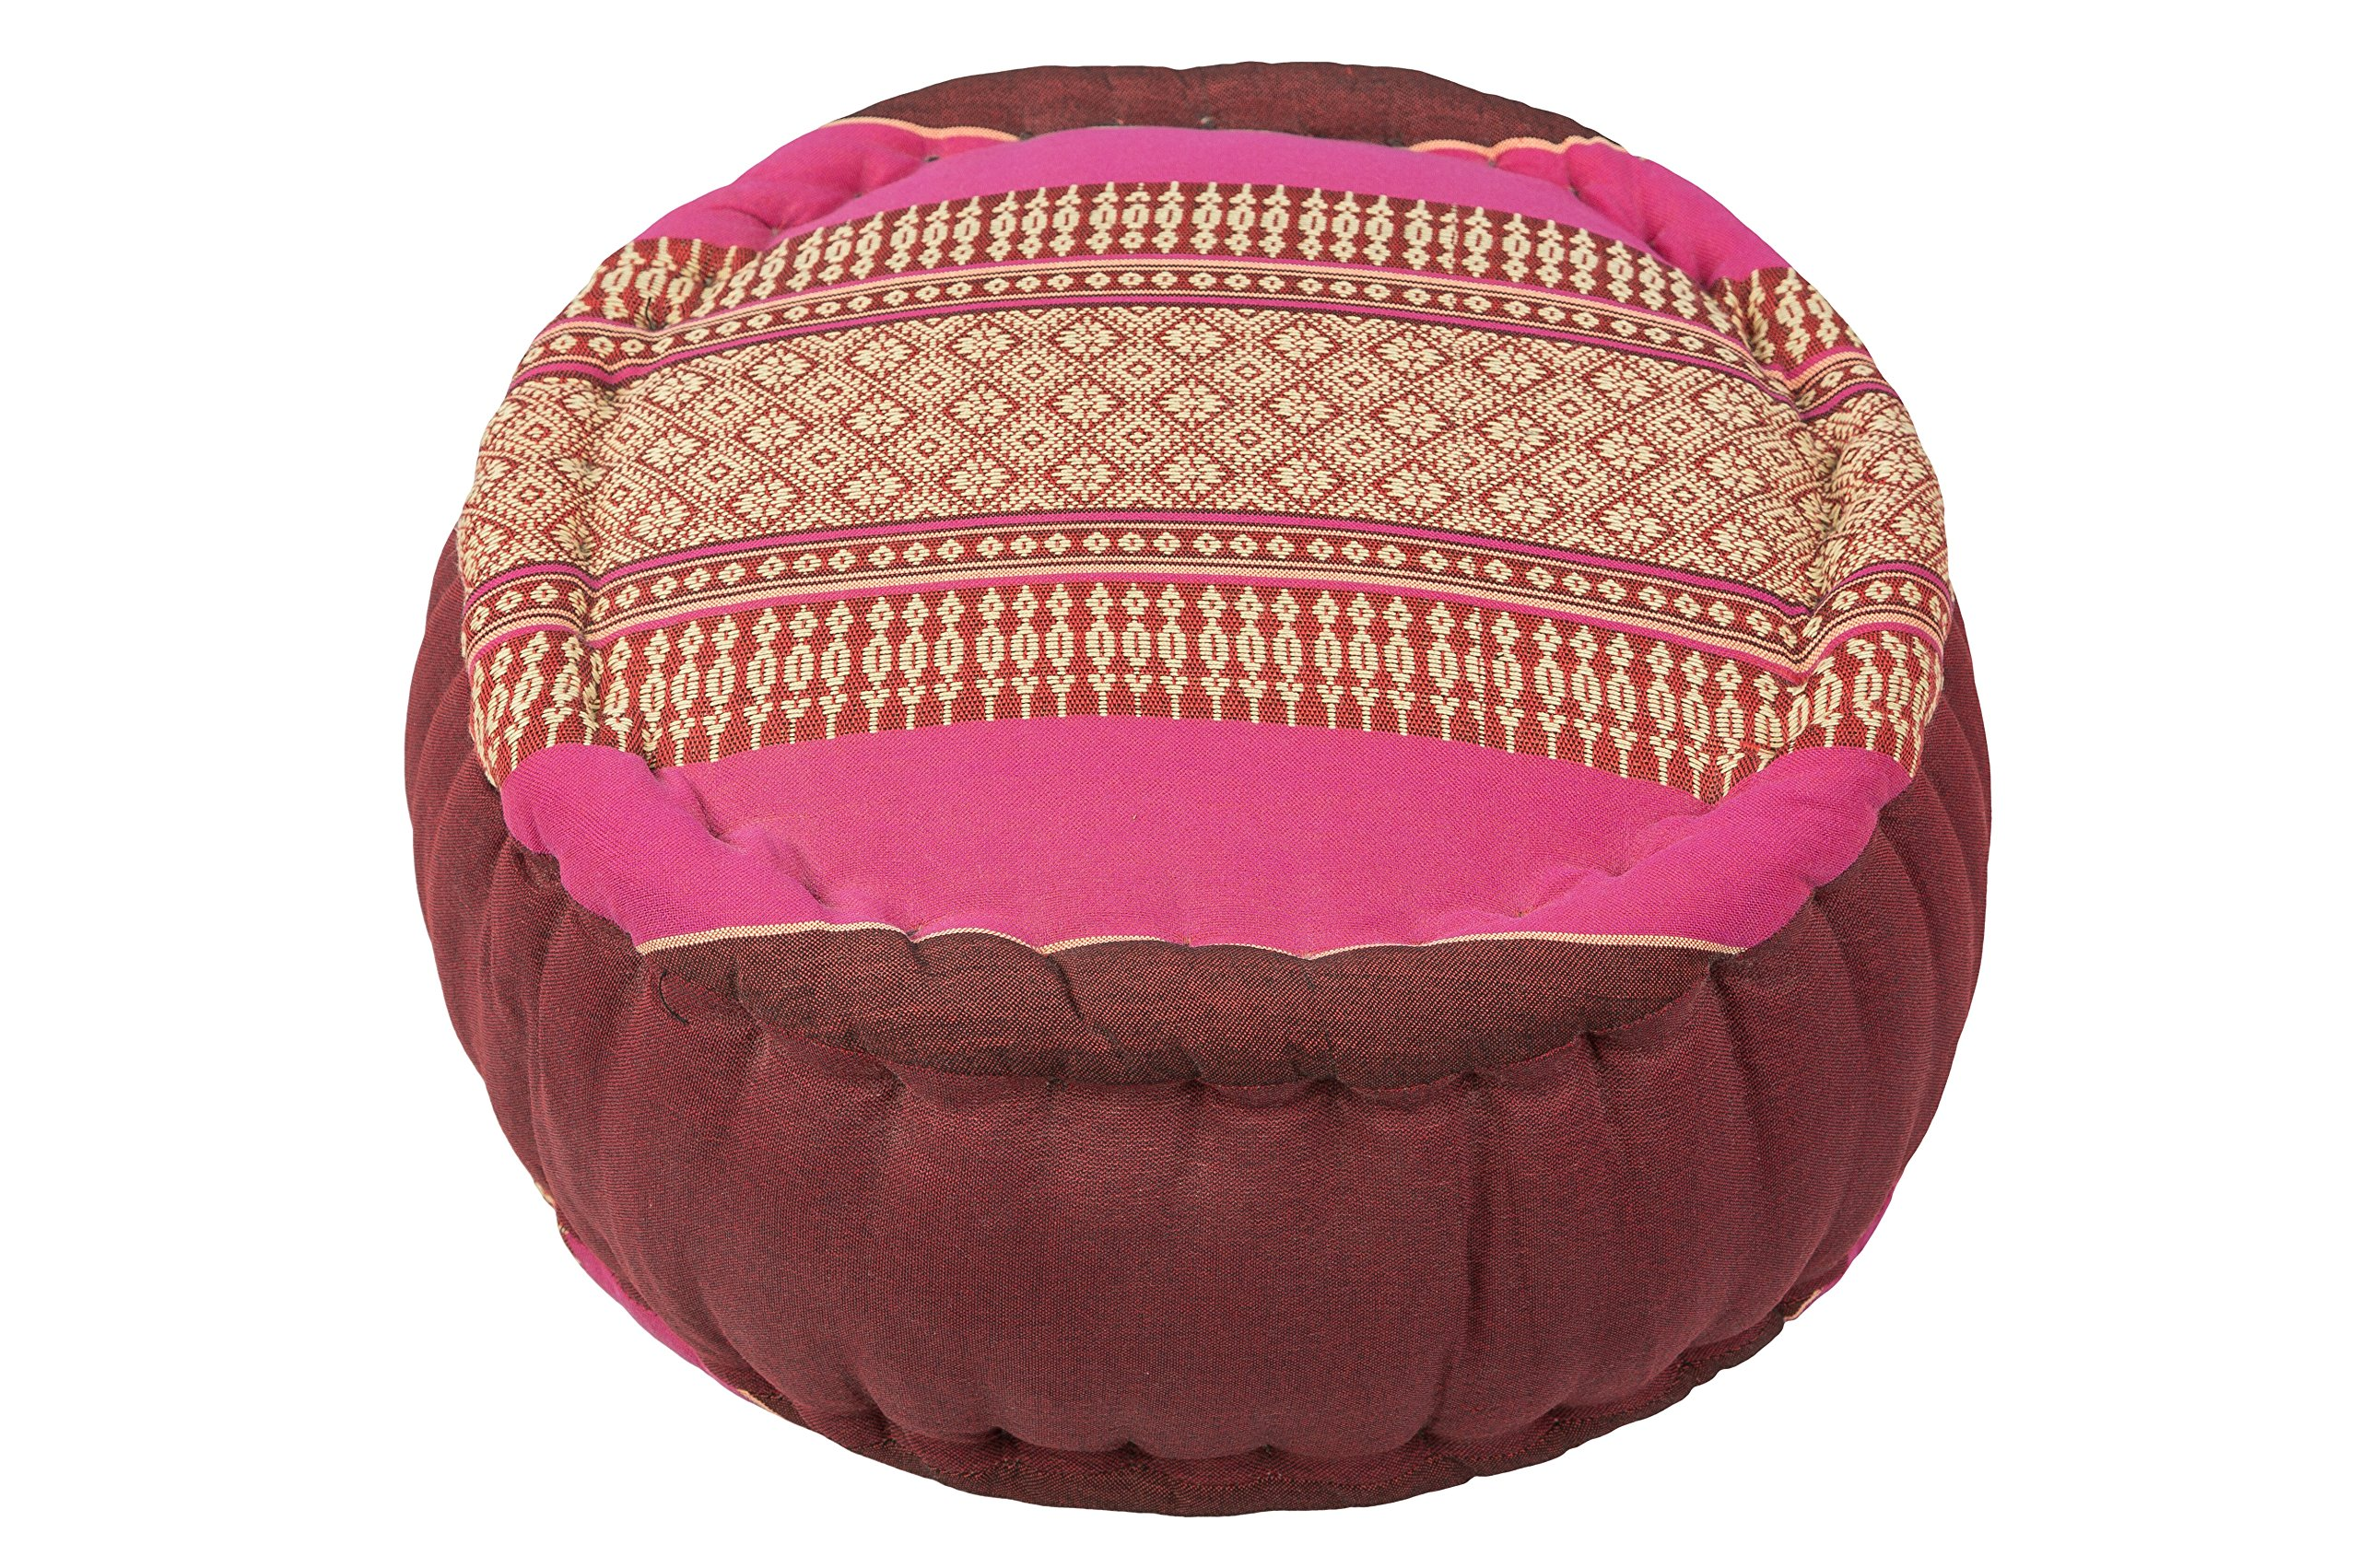 Kapok Dreams ™ Zafu Round Meditation Cushion 100% Kapok, Burgundy Pink Thai Design Pillow